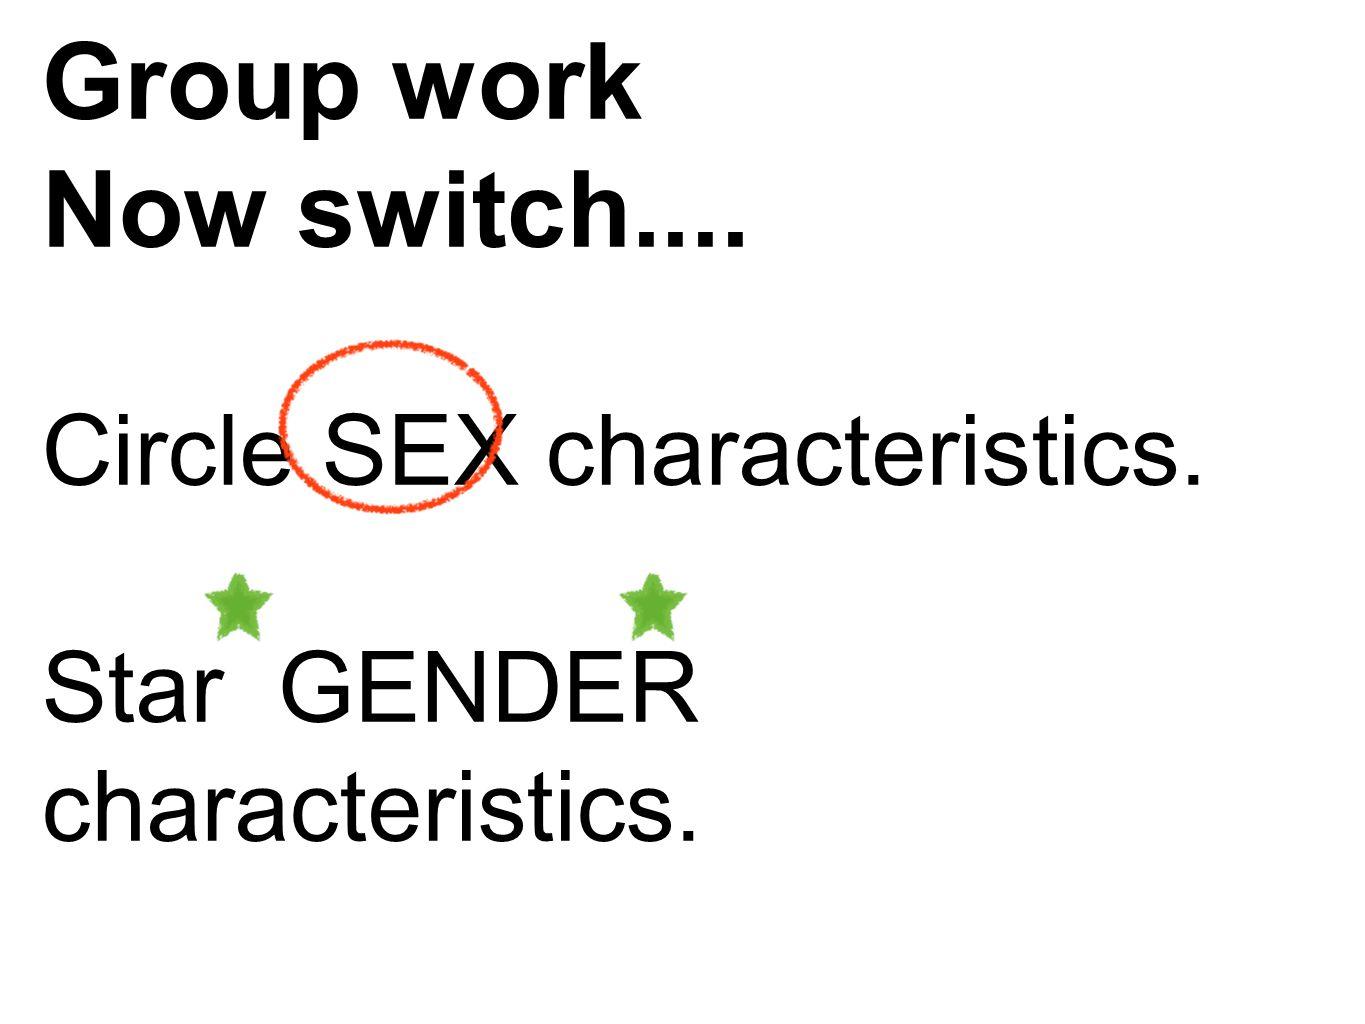 Group work Now switch.... Circle SEX characteristics. Star GENDER characteristics.